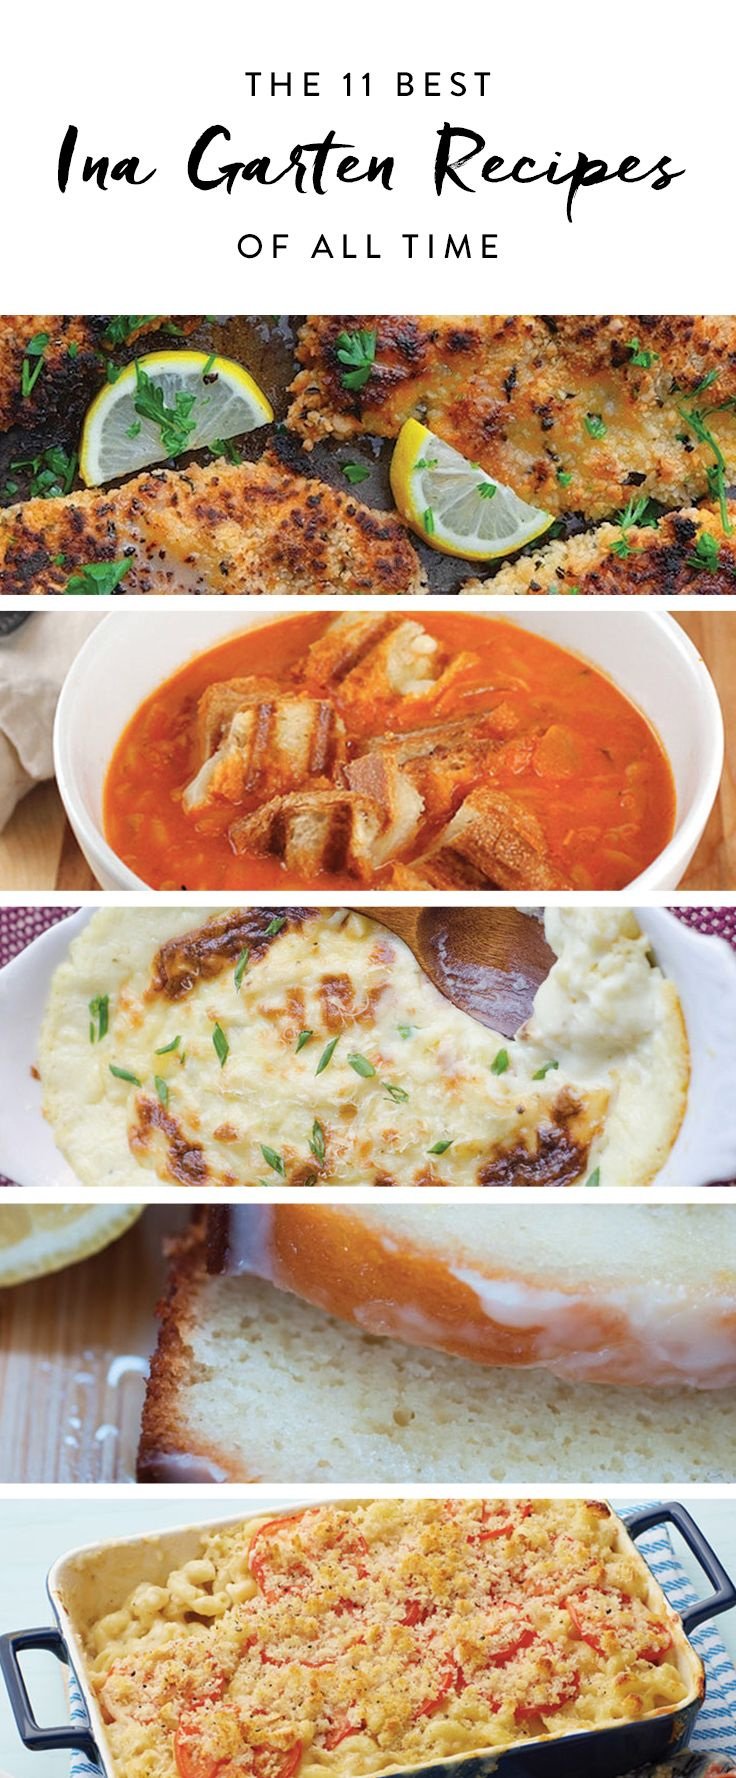 Ina Garten Recipes 45 Best Best Of Barefoot Recipes Images On Pinterest  Ina Garten